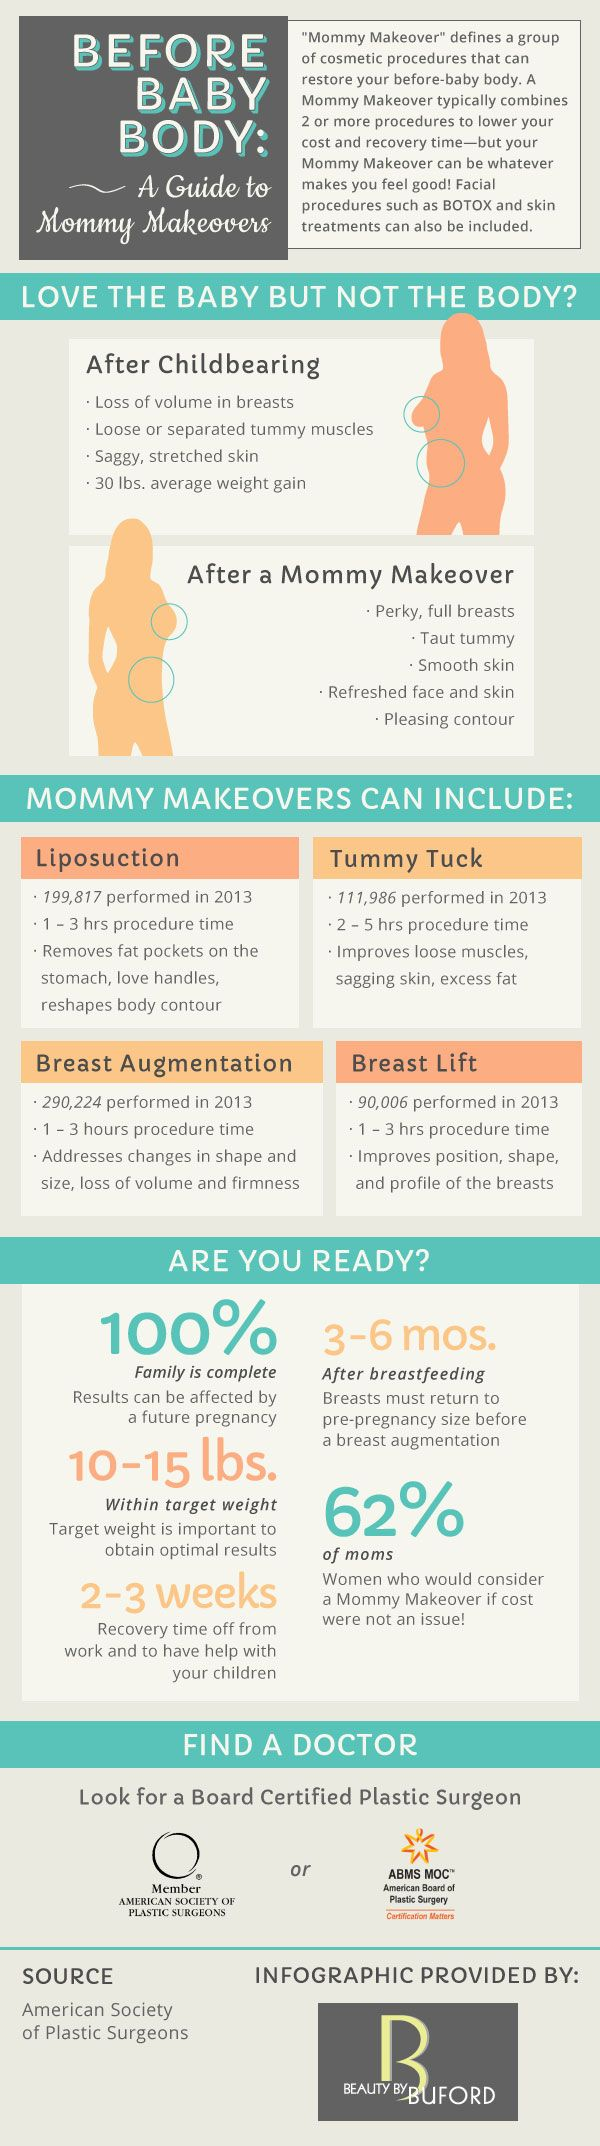 """Mommy Makeover"" defines a group of cosmetic procedures that can restore your before-baby body."